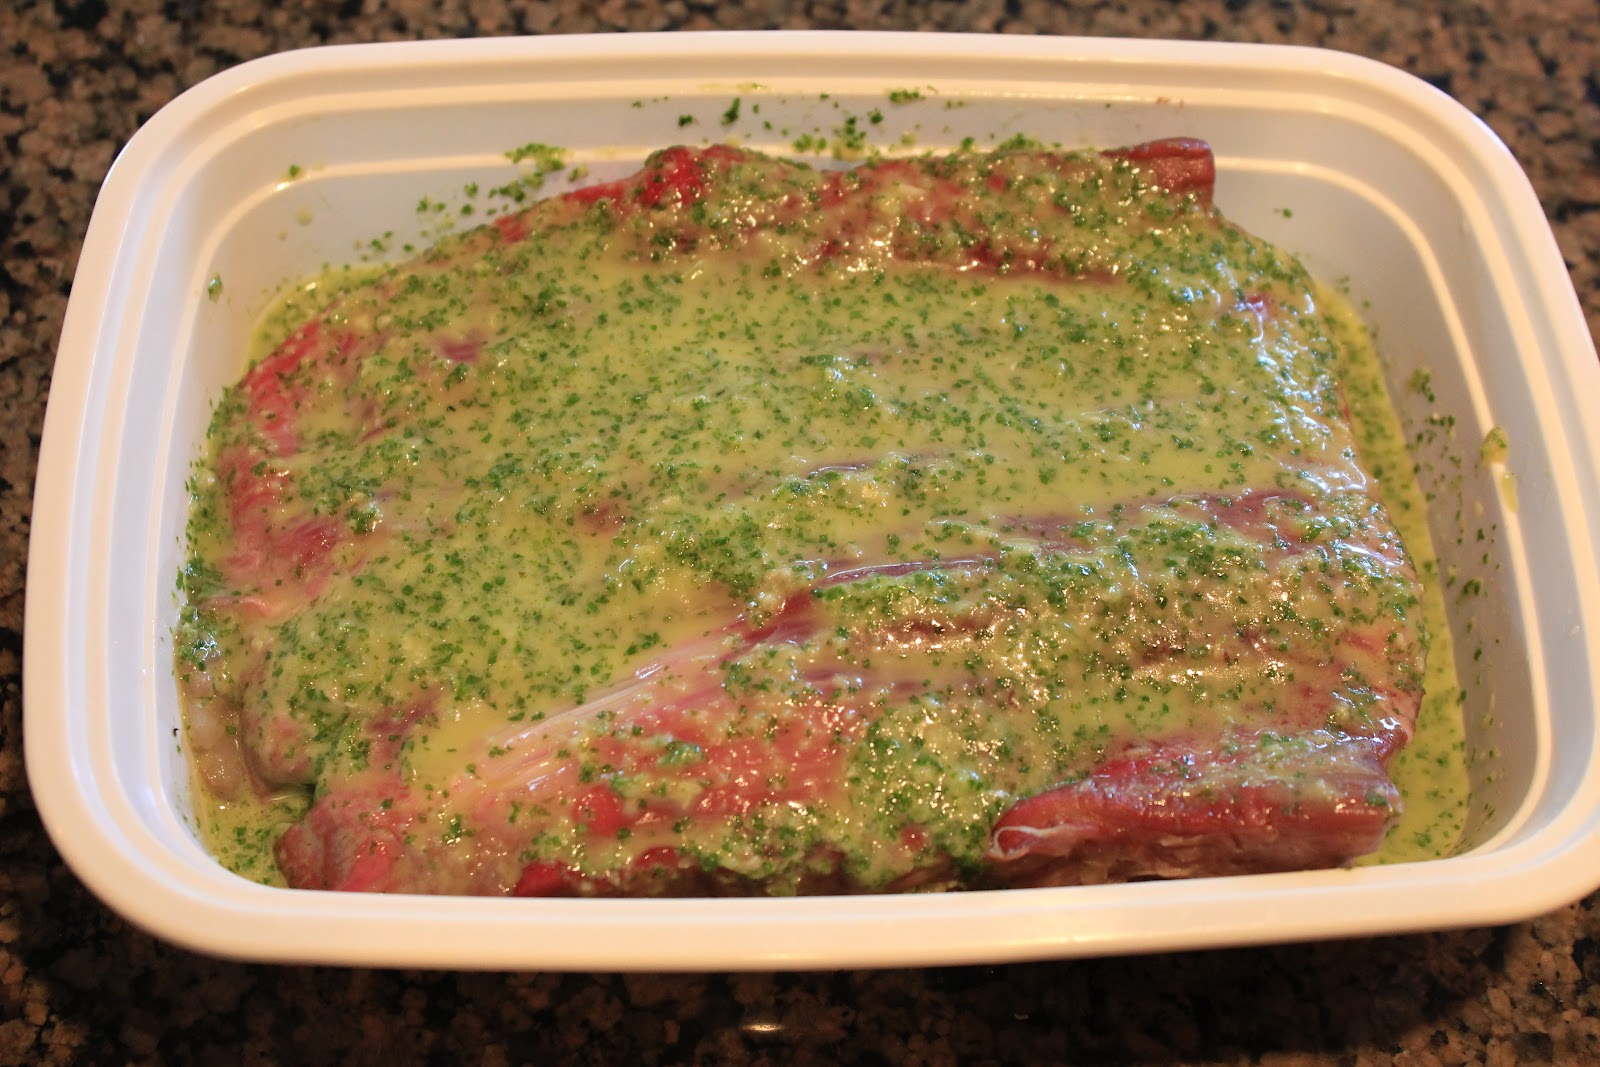 Never trust a skinny cook....: Cilantro lime flank steak